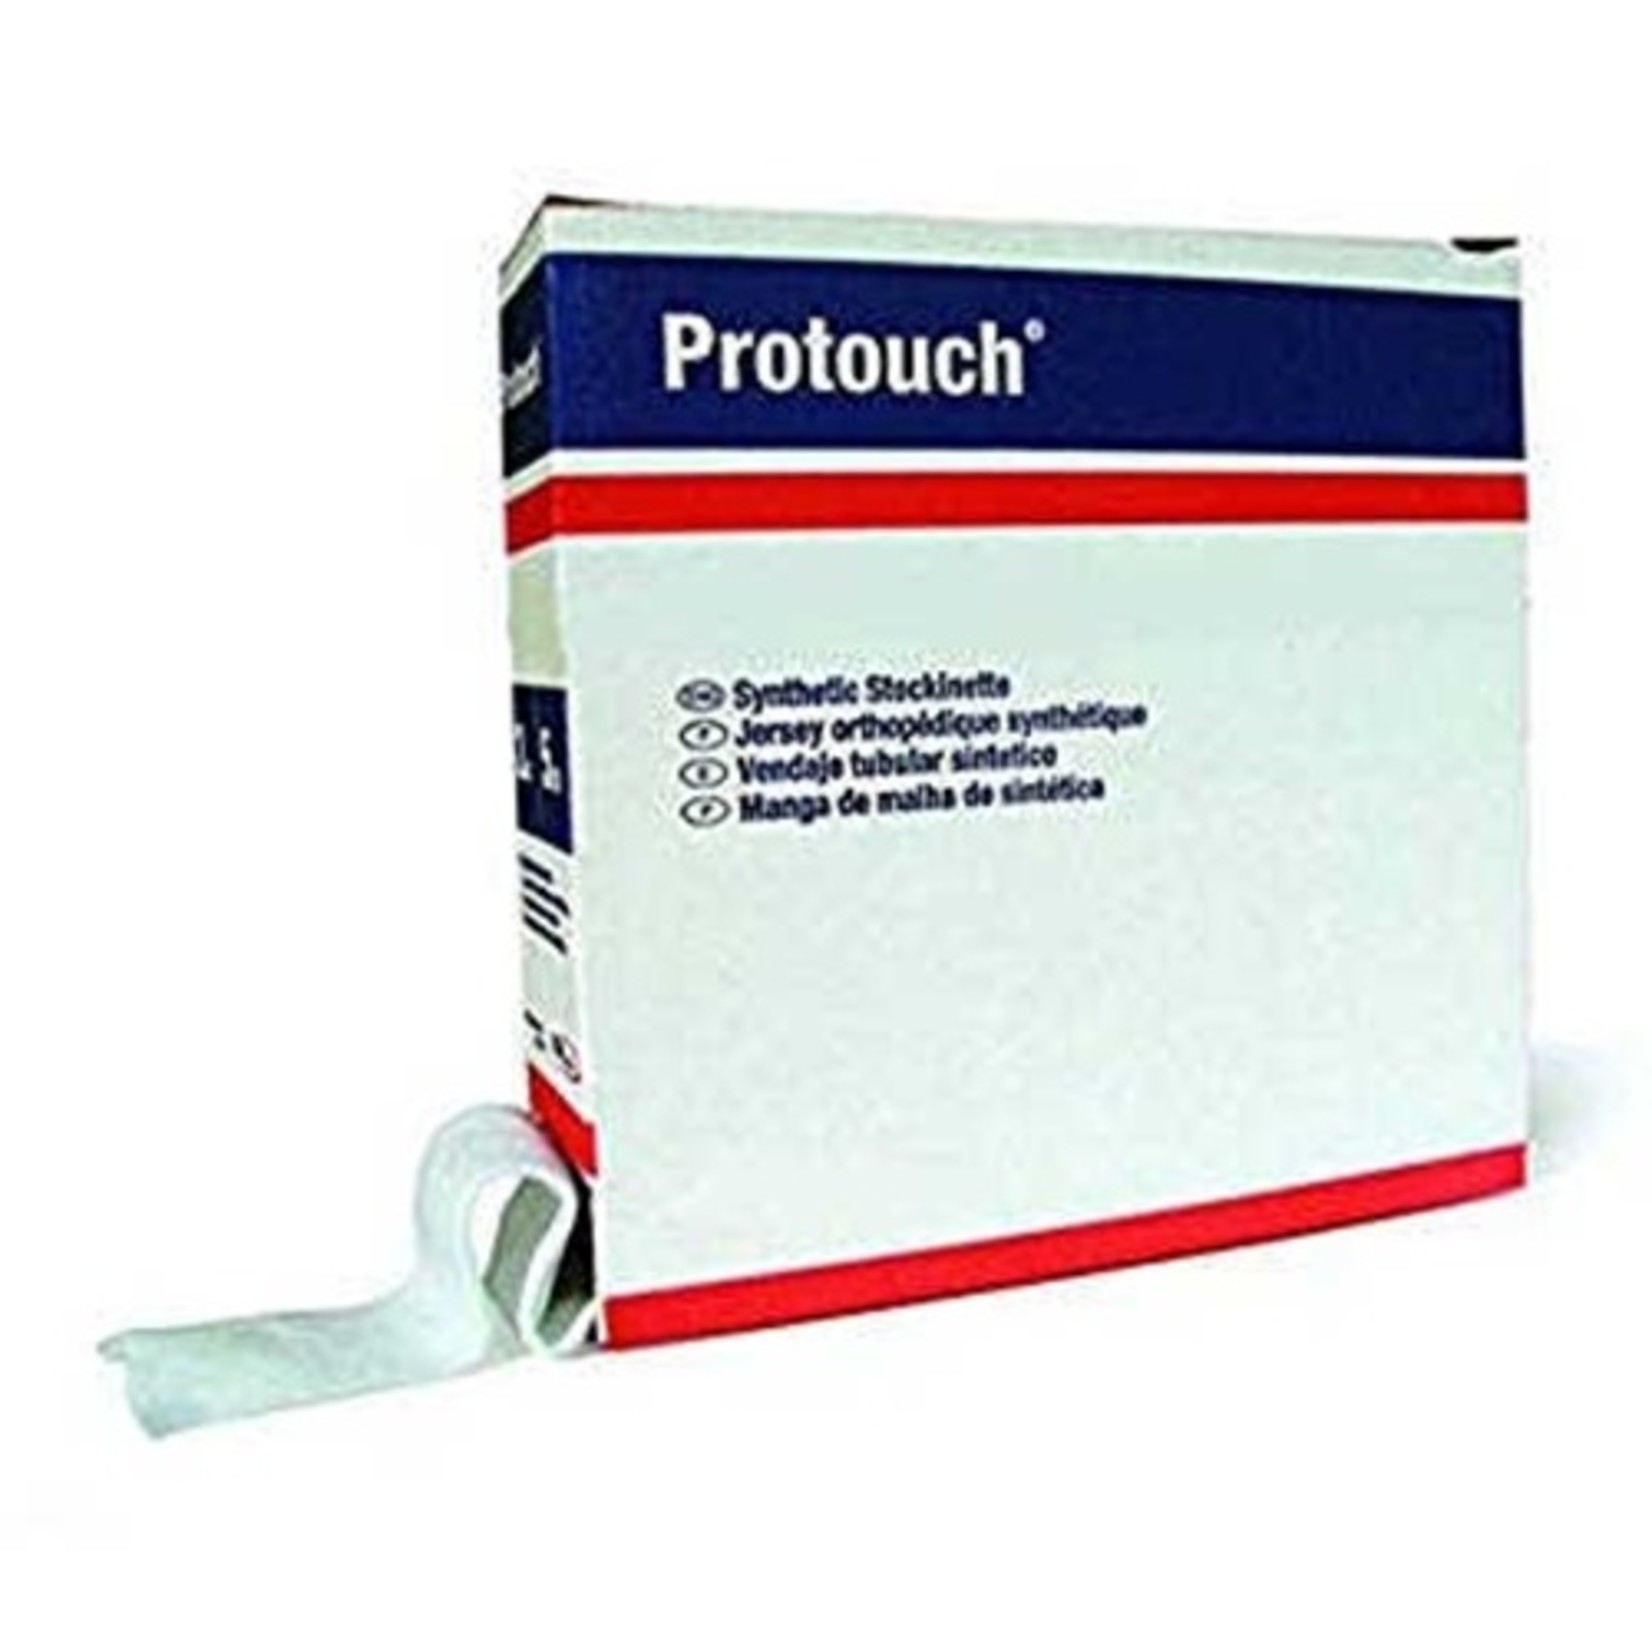 PROTOUCH PROTOUCH SYNTHETIC STOCKINETTE (Price Per foot)